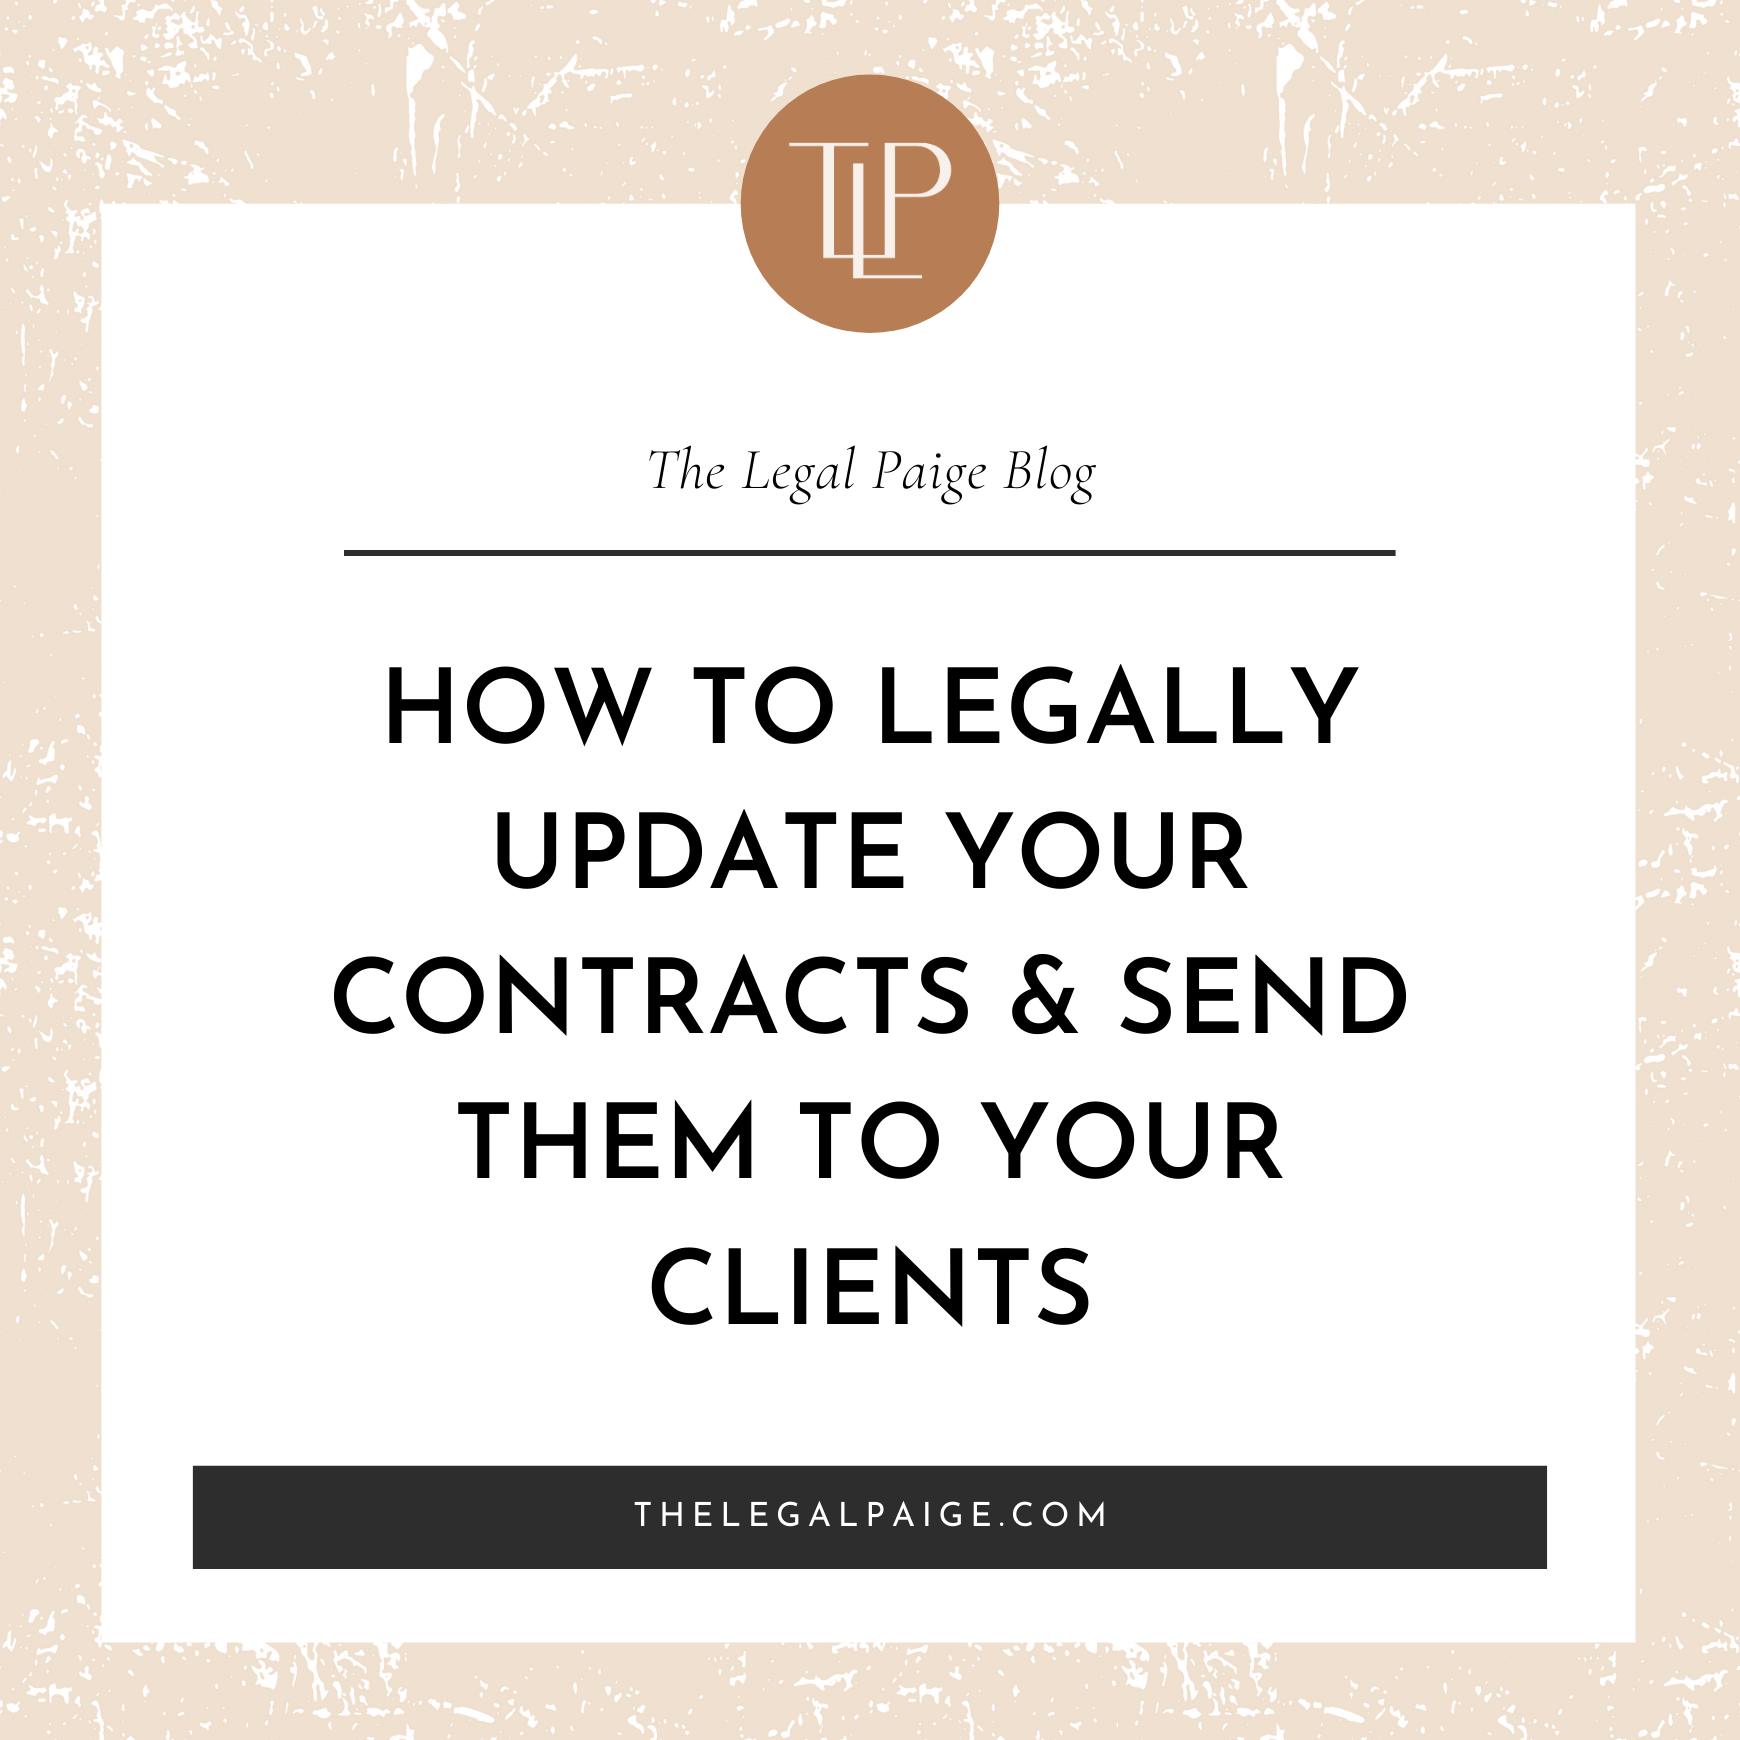 How to Legally Update Your Contracts & Send Them To Your Clients